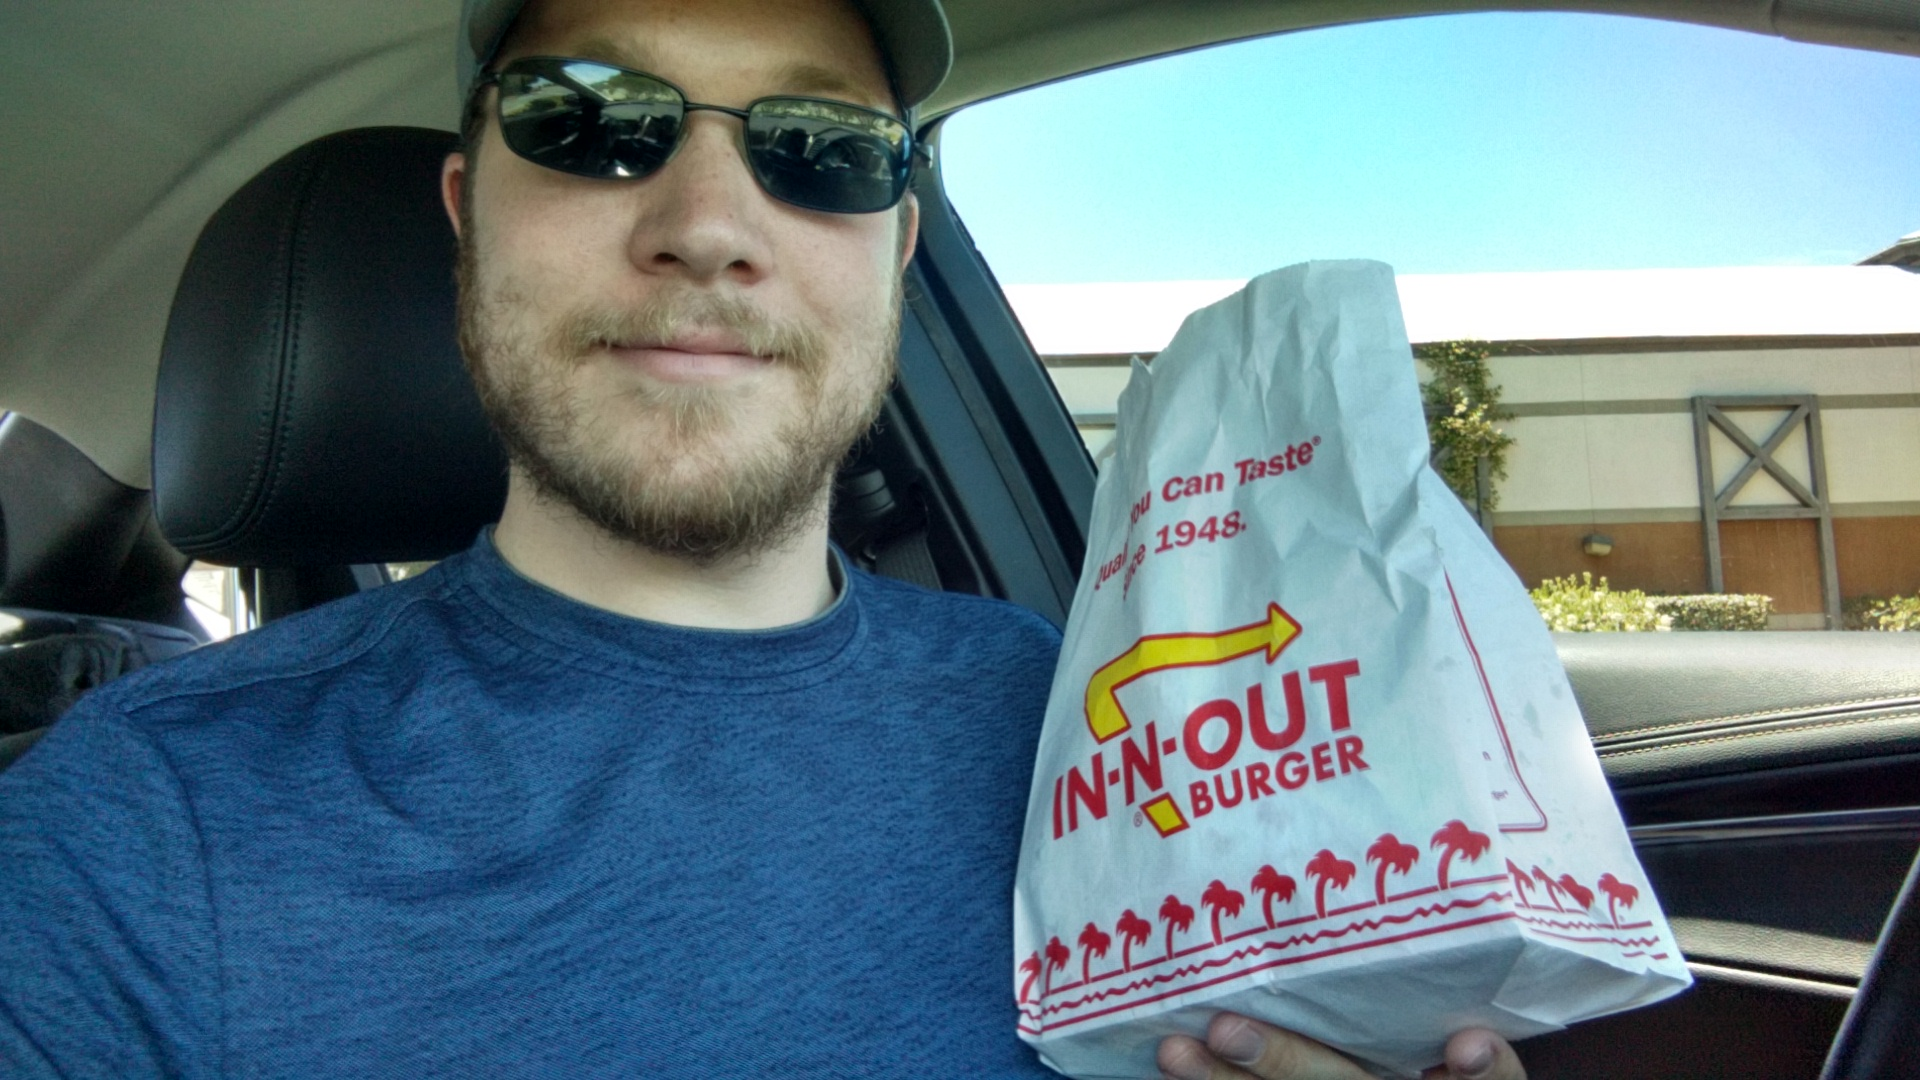 My first In-N-Out Burger, because I needed a selfie.